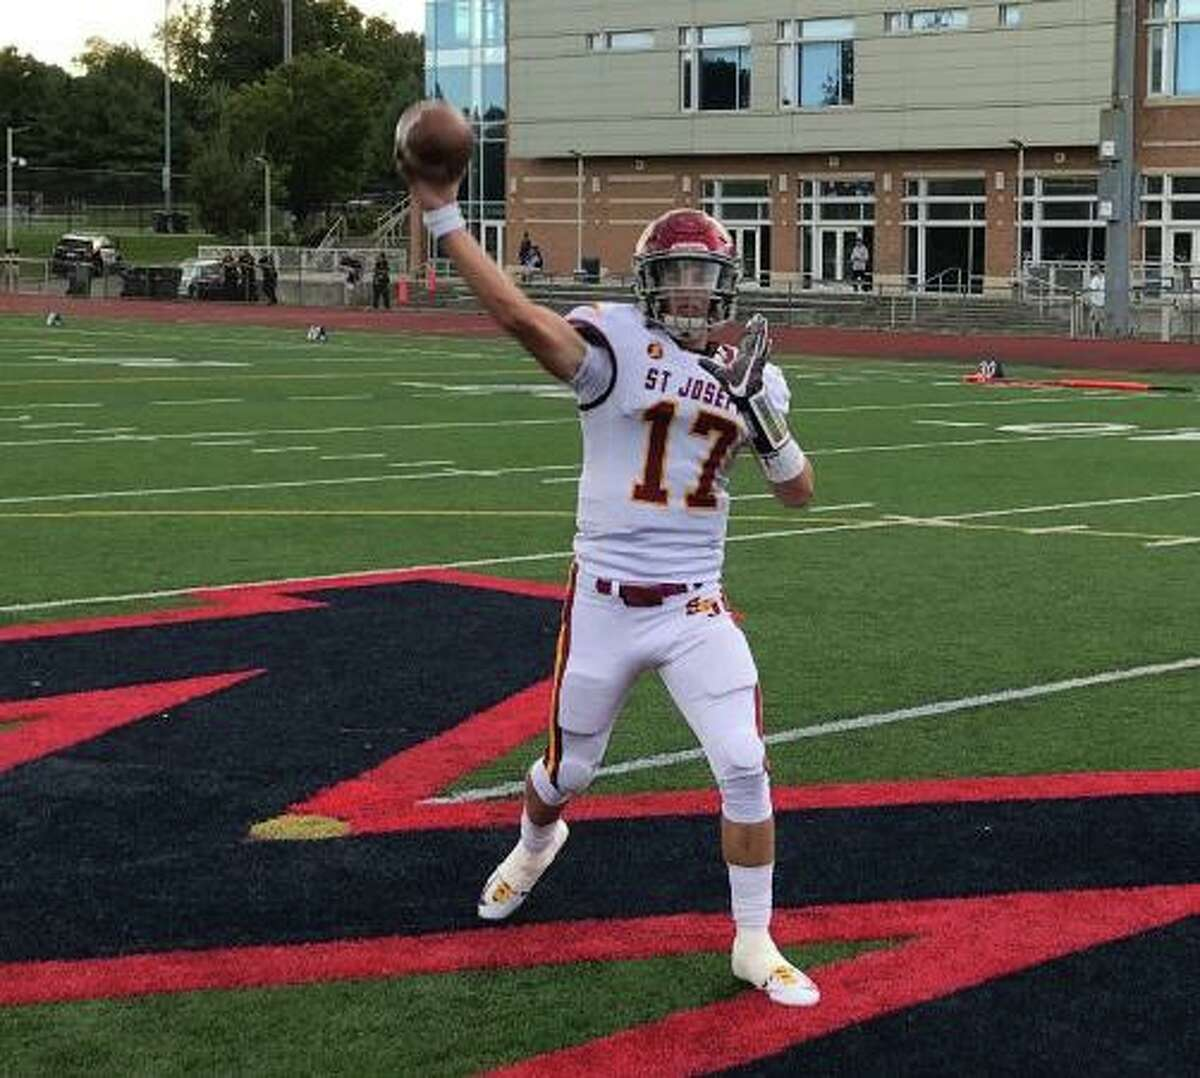 Jack Wallace threw for five touchdowns in his first varsity start at quarterback for St. Joseph on Friday.